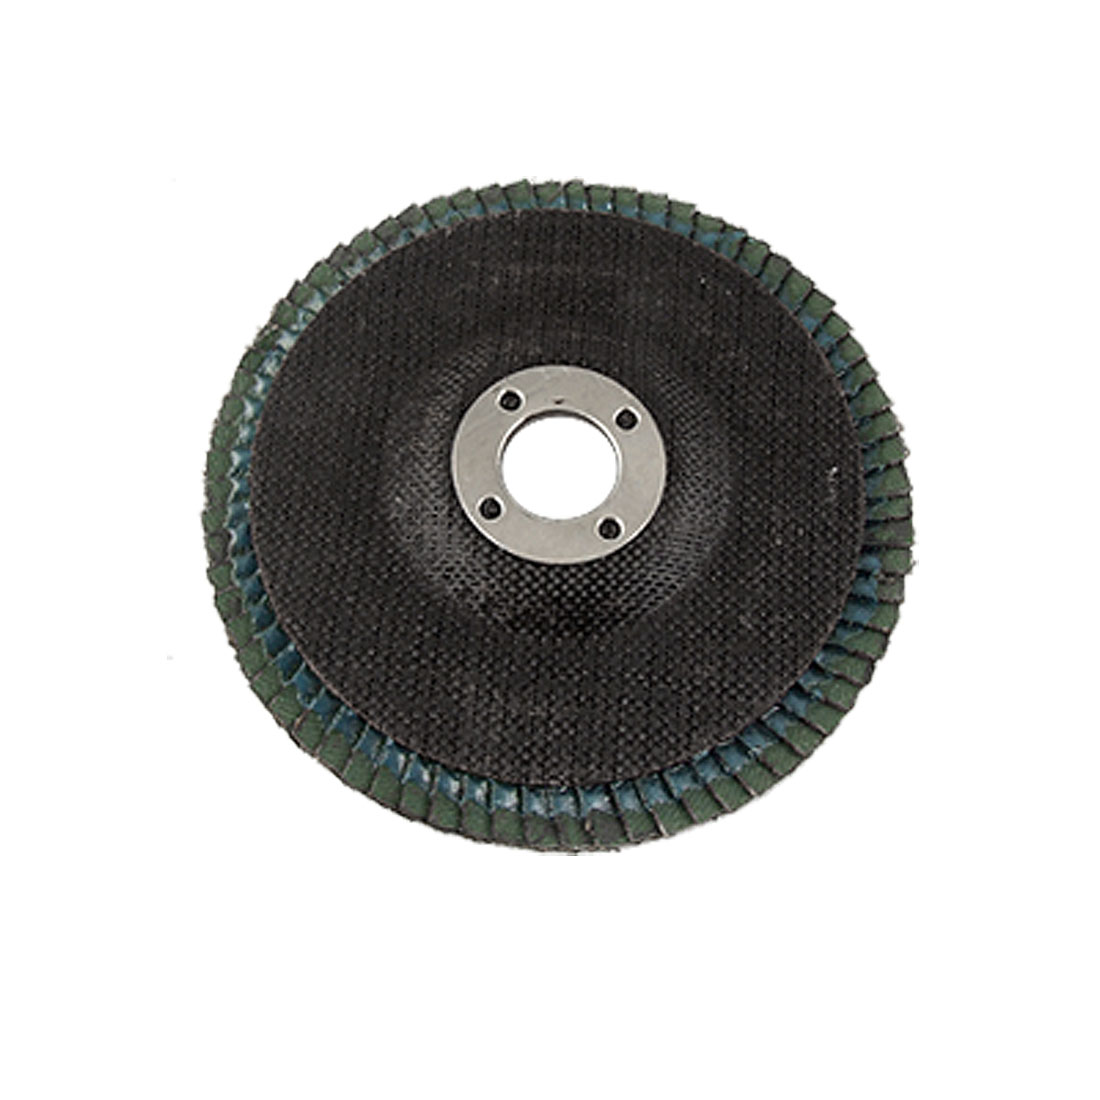 4inch Outer Dia 80# Grit Flap Sanding Disc Grinding Wheel